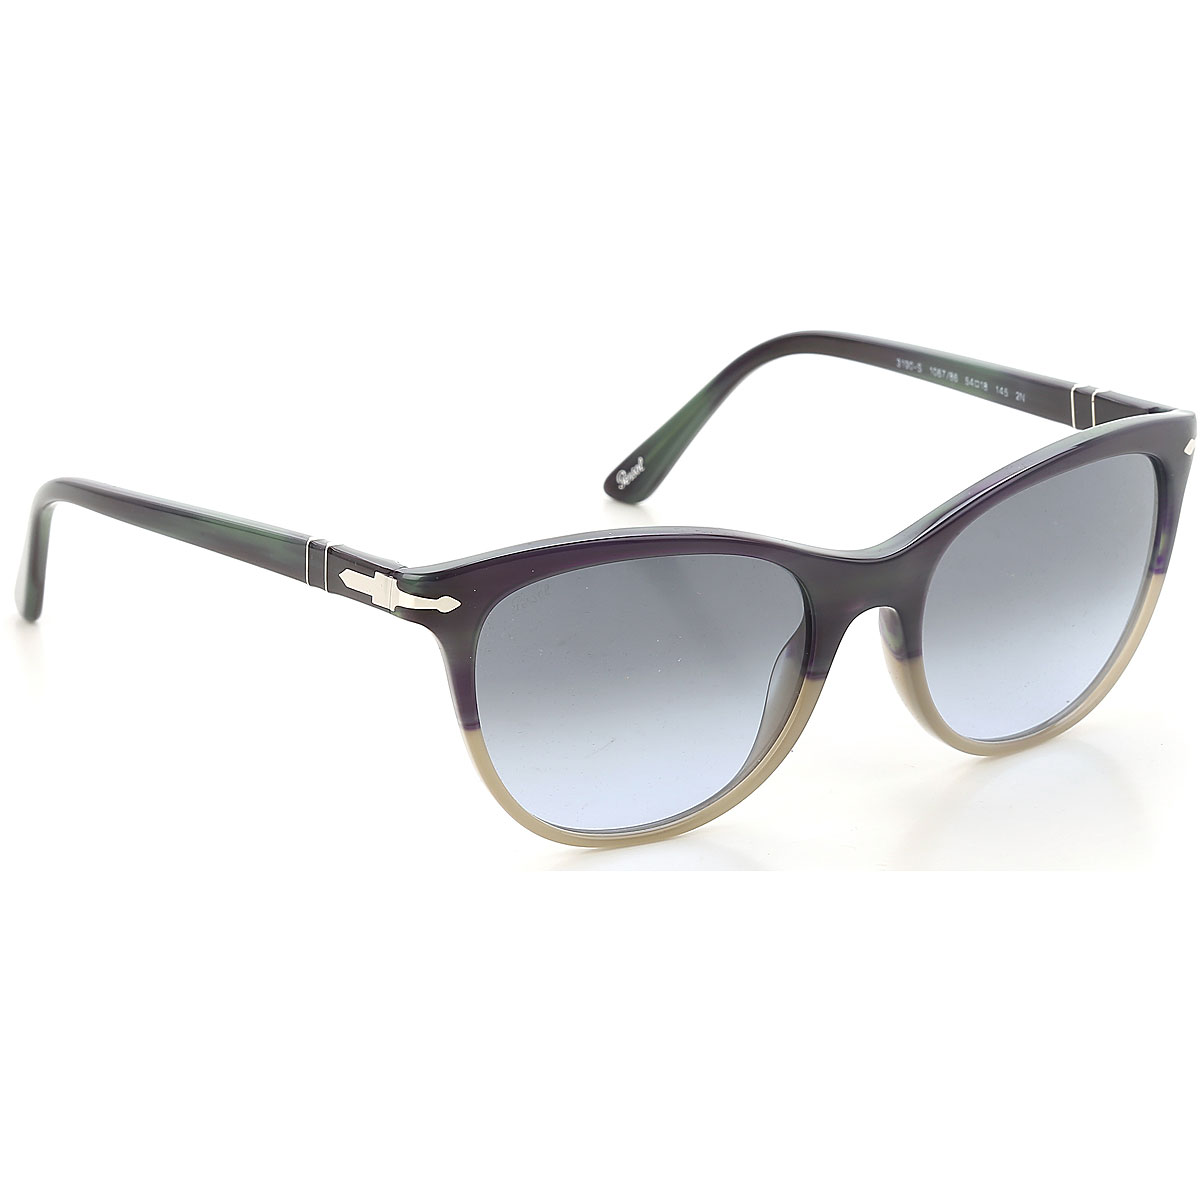 Persol Sunglasses On Sale, Shaded Blue, 2019